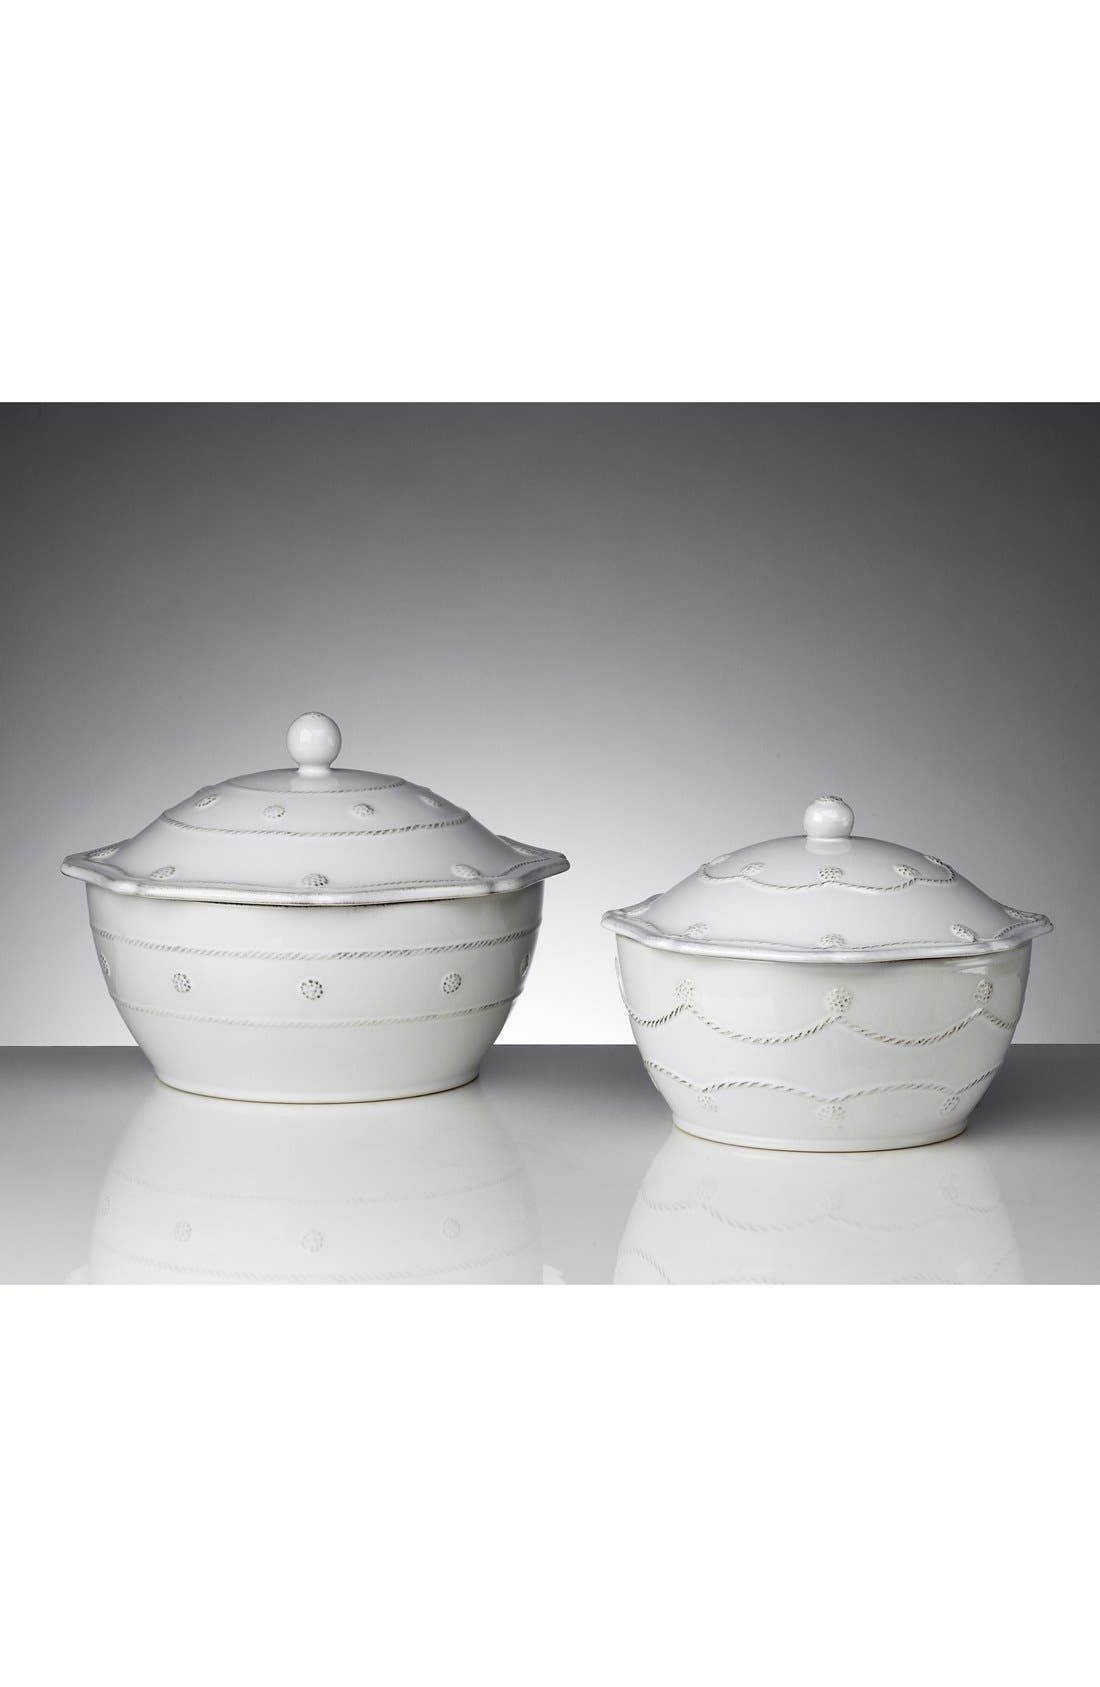 'Berry and Thread' Casserole Dish with Lid,                             Alternate thumbnail 2, color,                             WHITEWASH